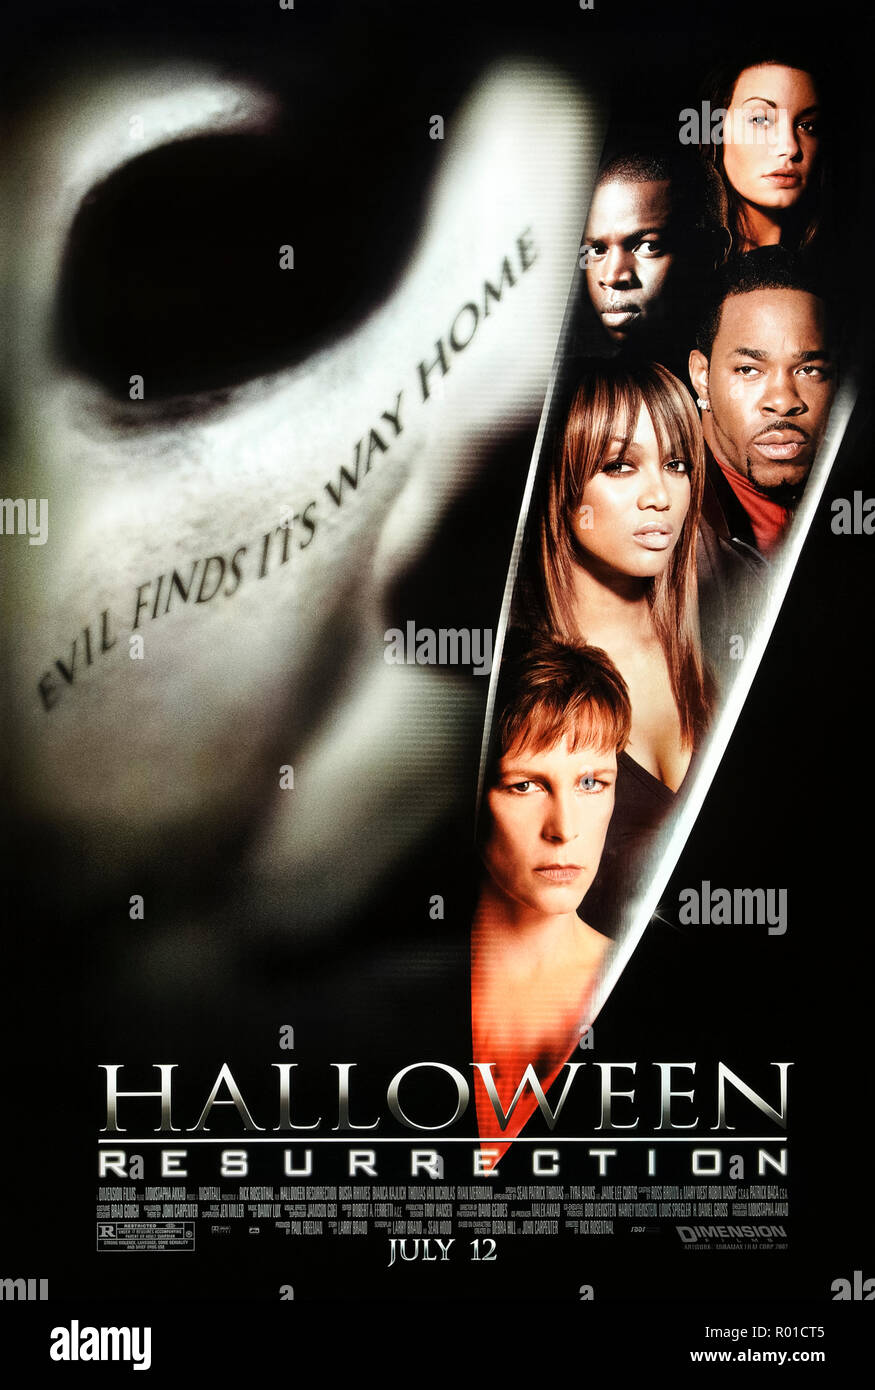 Halloween: Resurrection (2002) directed by Rick Rosenthal and starring Jamie Lee Curtis, Busta Rhymes, Brad Loree and Bianca Kajlich. Serial Killer Michael Myers returns to murder the contestants of a reality show. - Stock Image